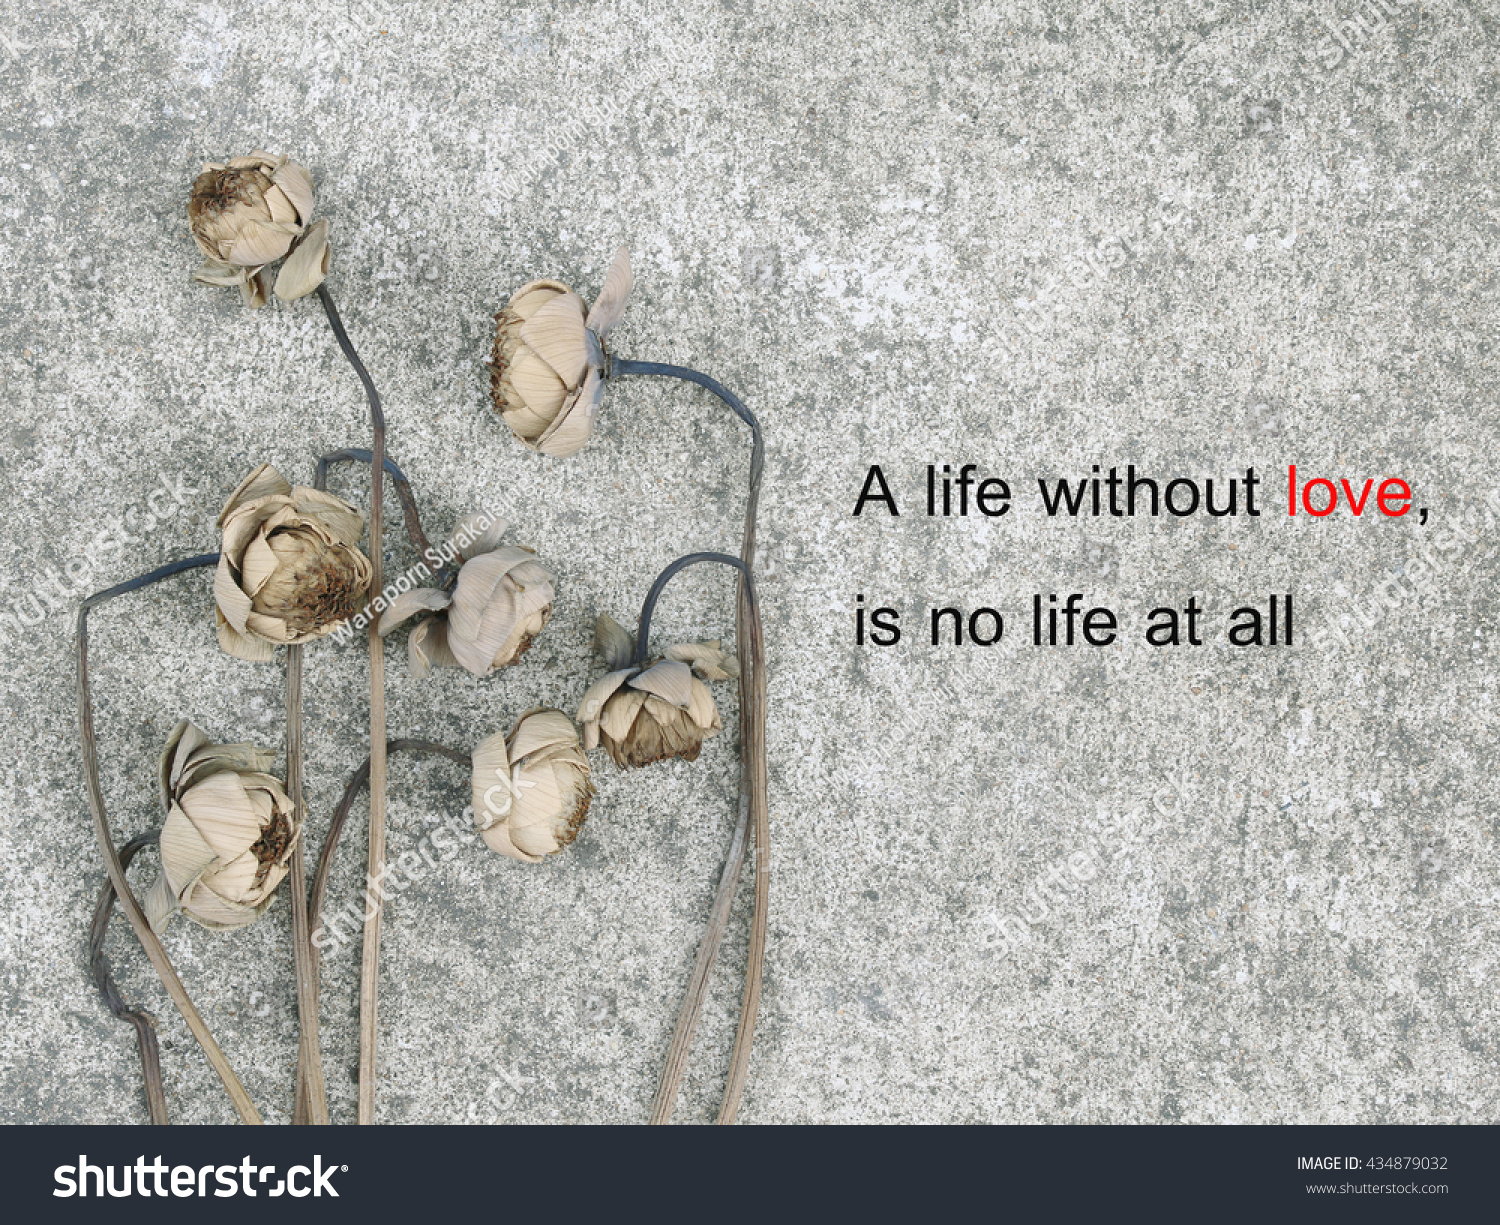 Inspirational Quotes About Life And Love Inspirational Quote Life Without Love No Stock Photo 434879032